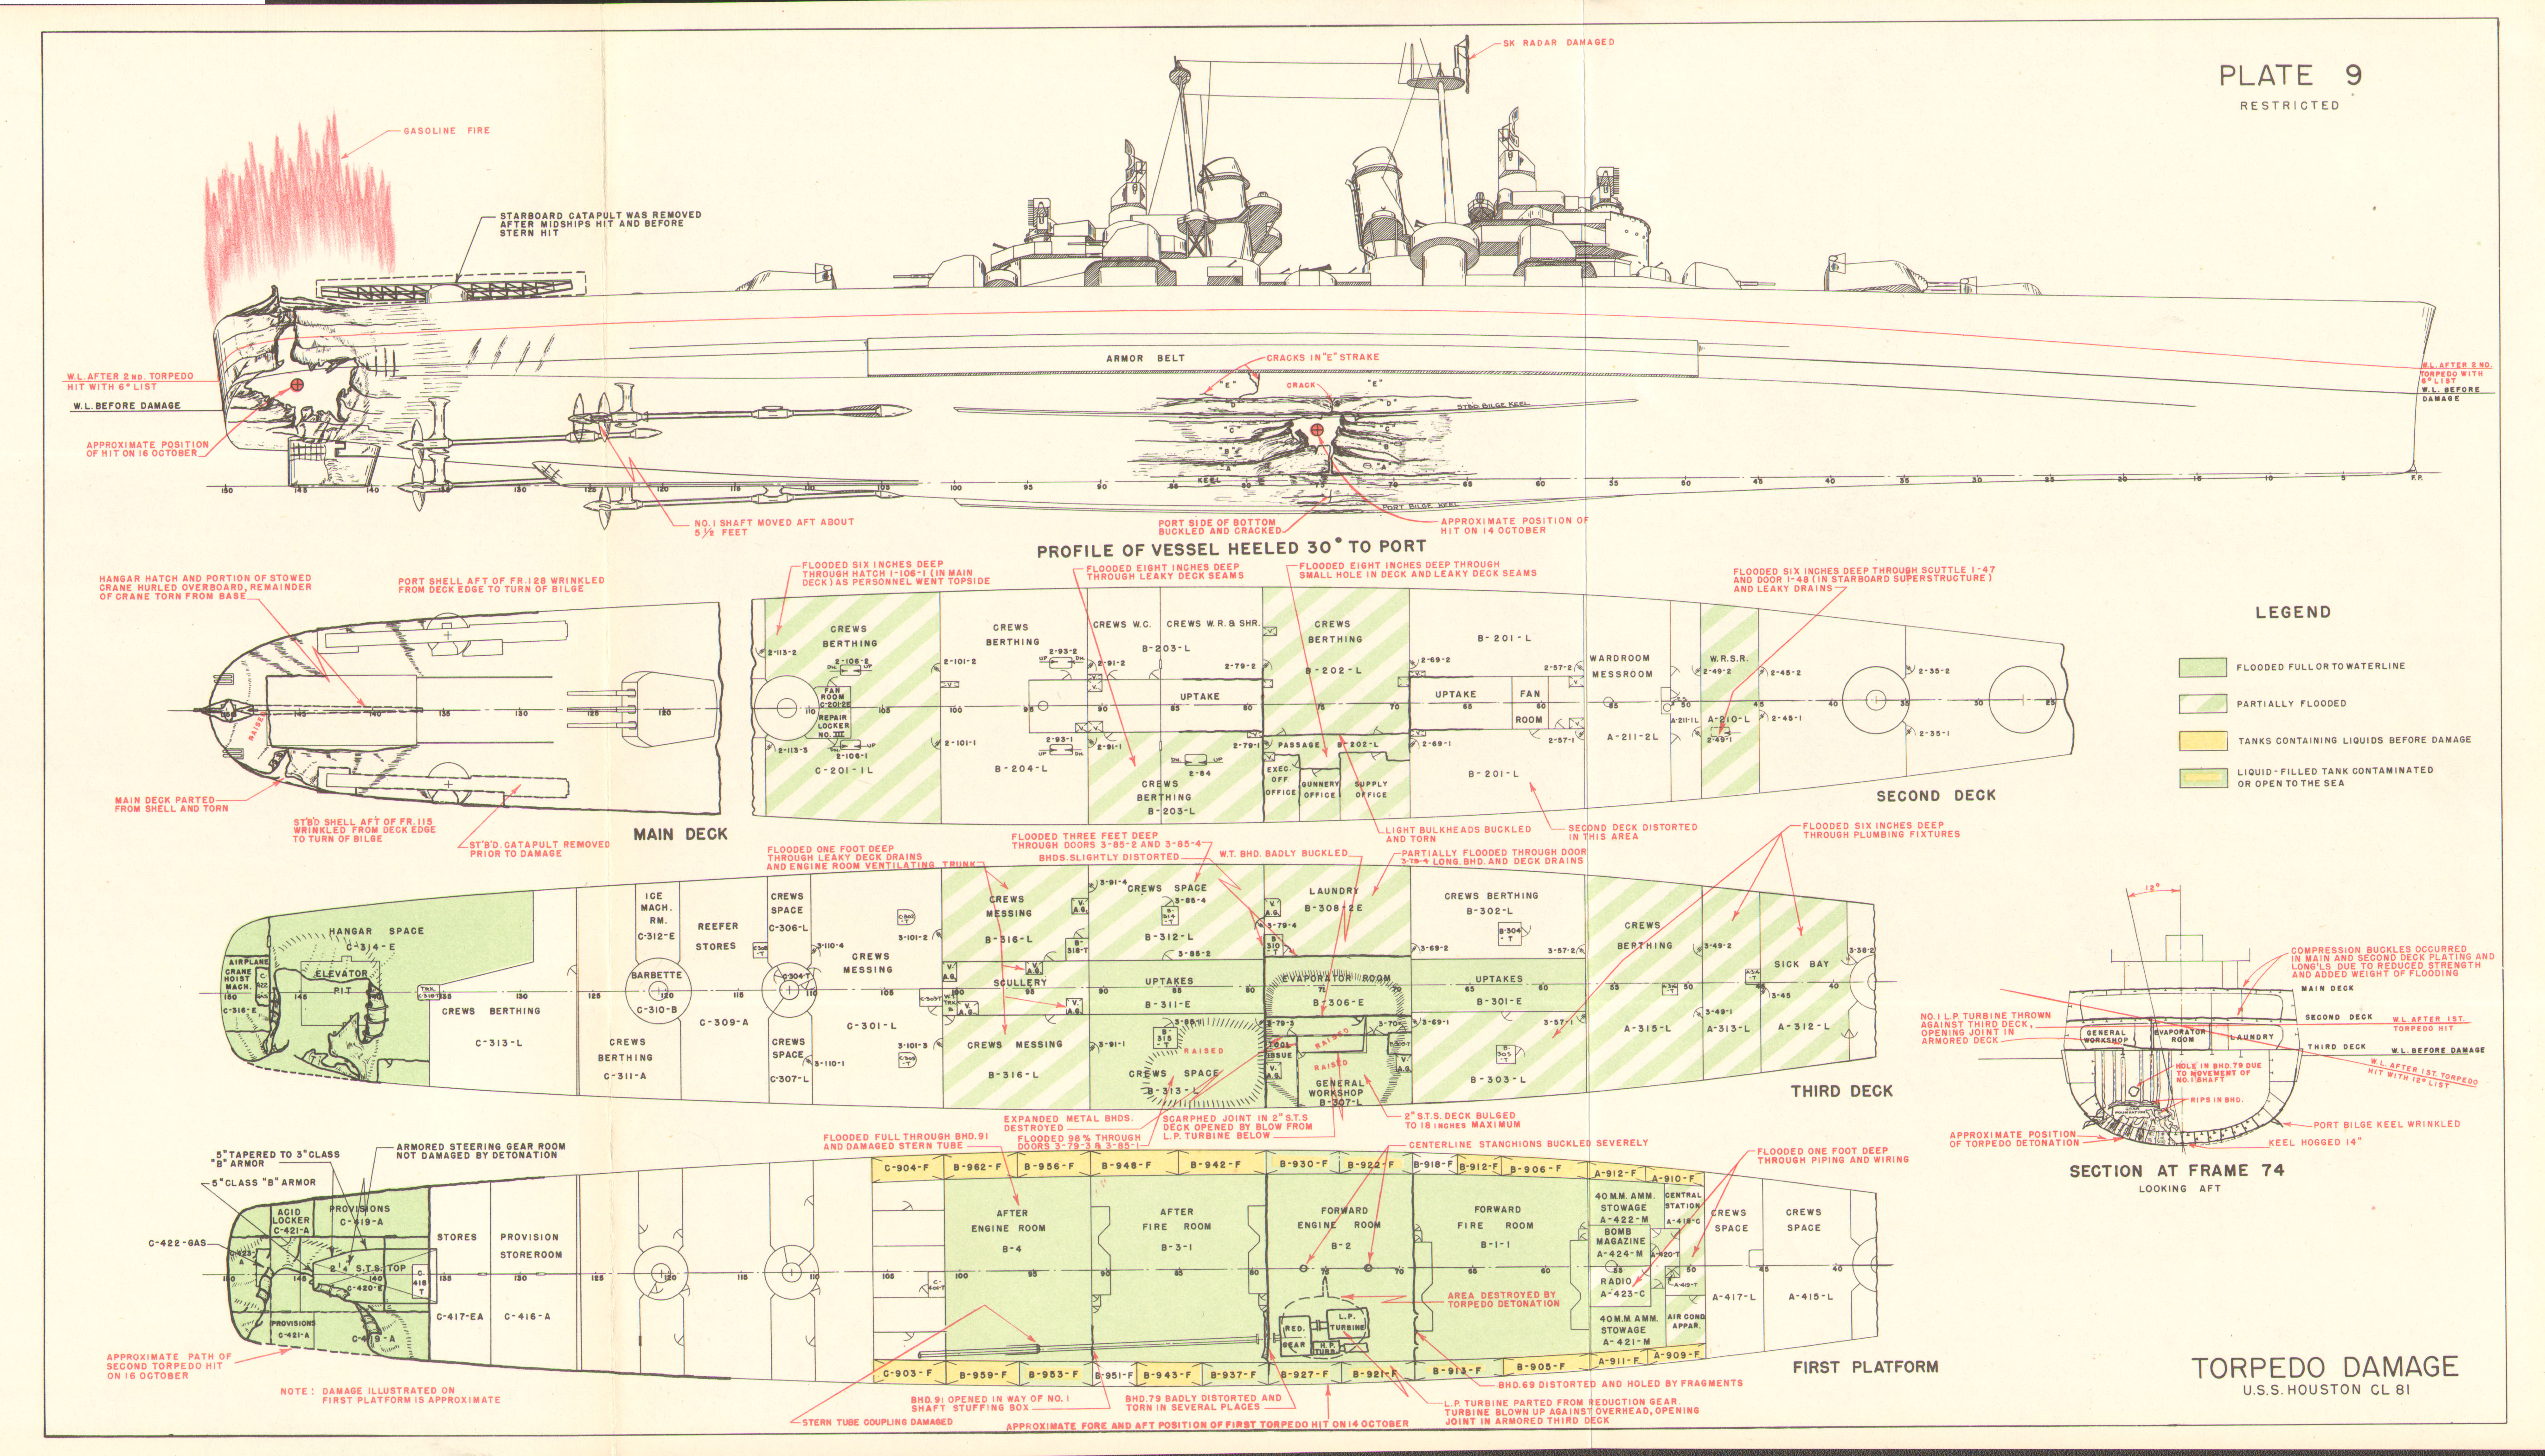 Official US Navy Bureau of Ships damage report schematic of ... on